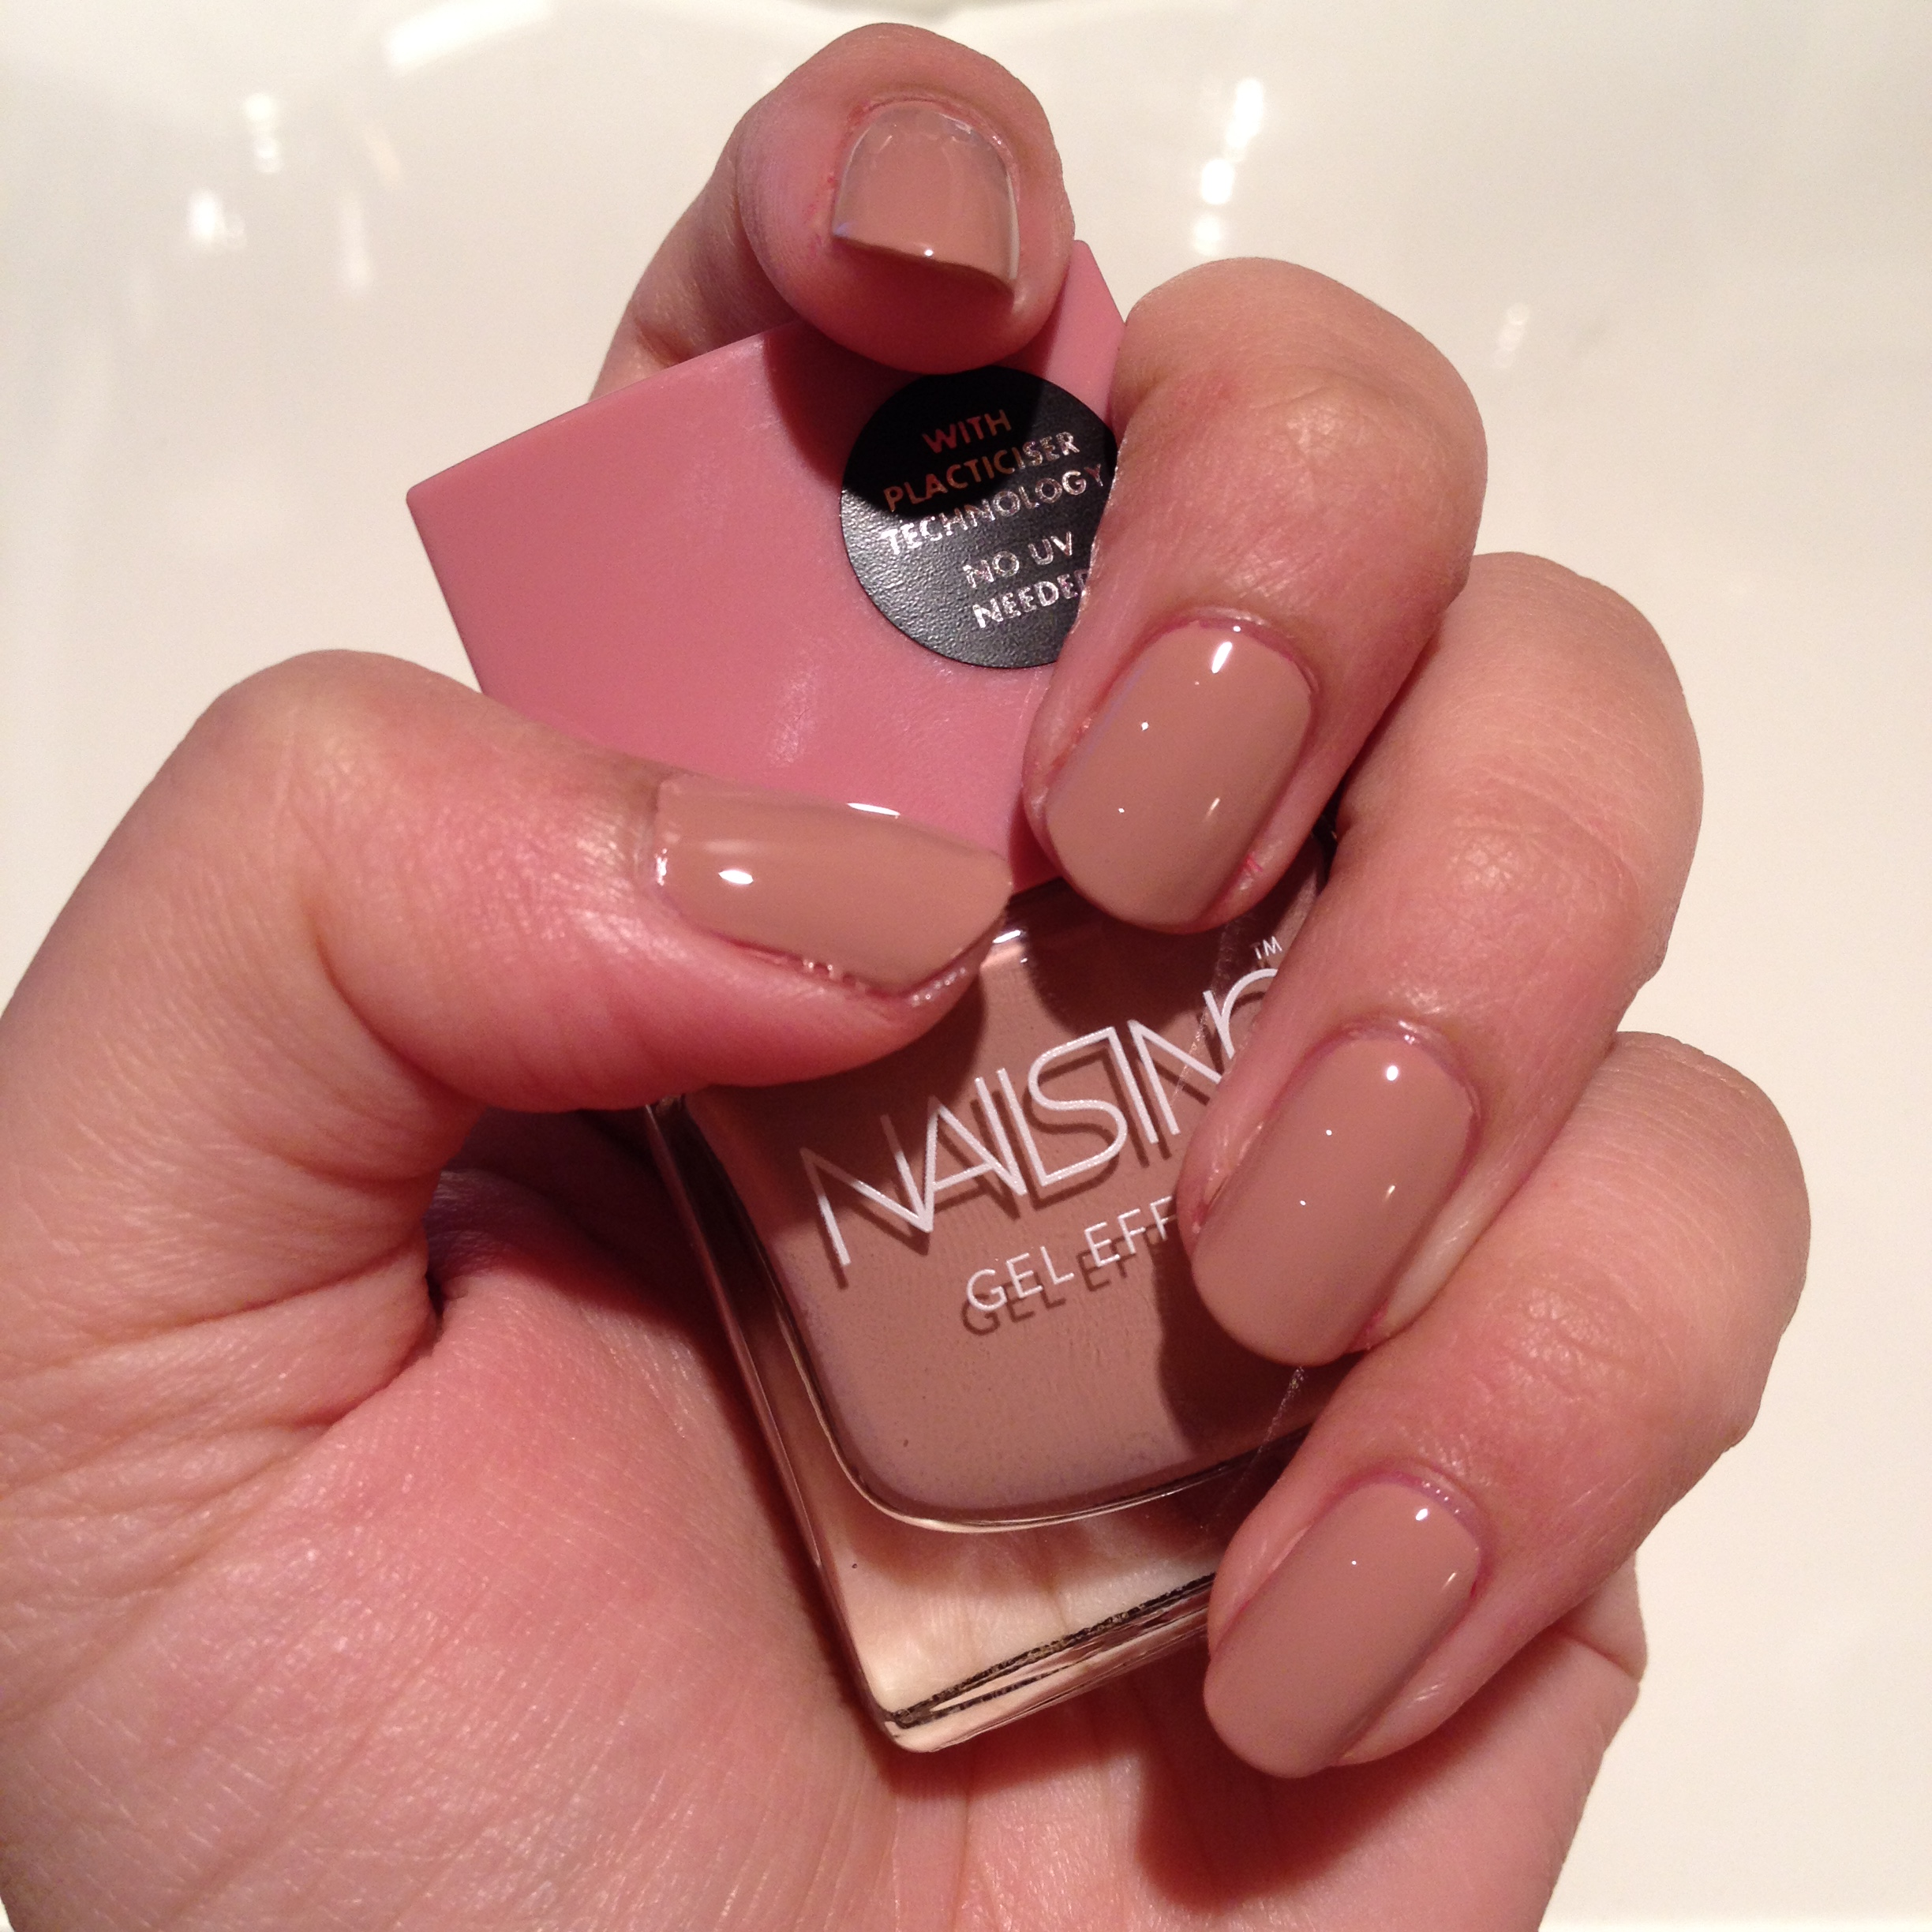 Mims Mini Manicures Nailsinc Gel Effect Nail Polish